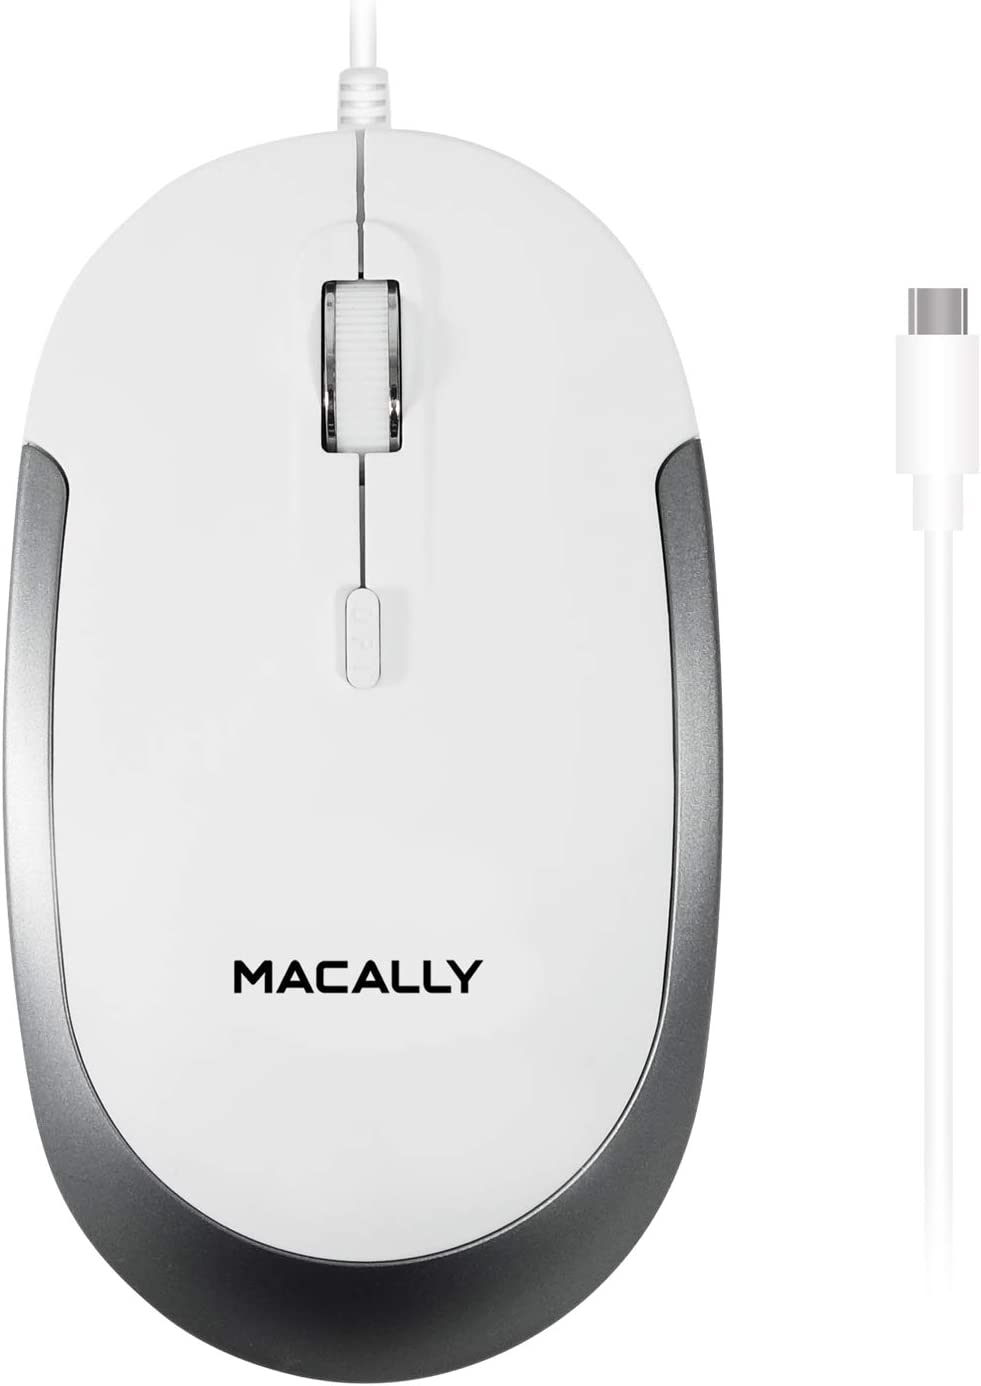 Macally Wired USB C Mouse for Mac & Windows - 3 Button & Scroll Wheel USB Type C Mouse - Comfortable Ambidextrous Design - Compact Wired Mouse with Optical Sensor & DPI Switch 800/1200/1600/2400